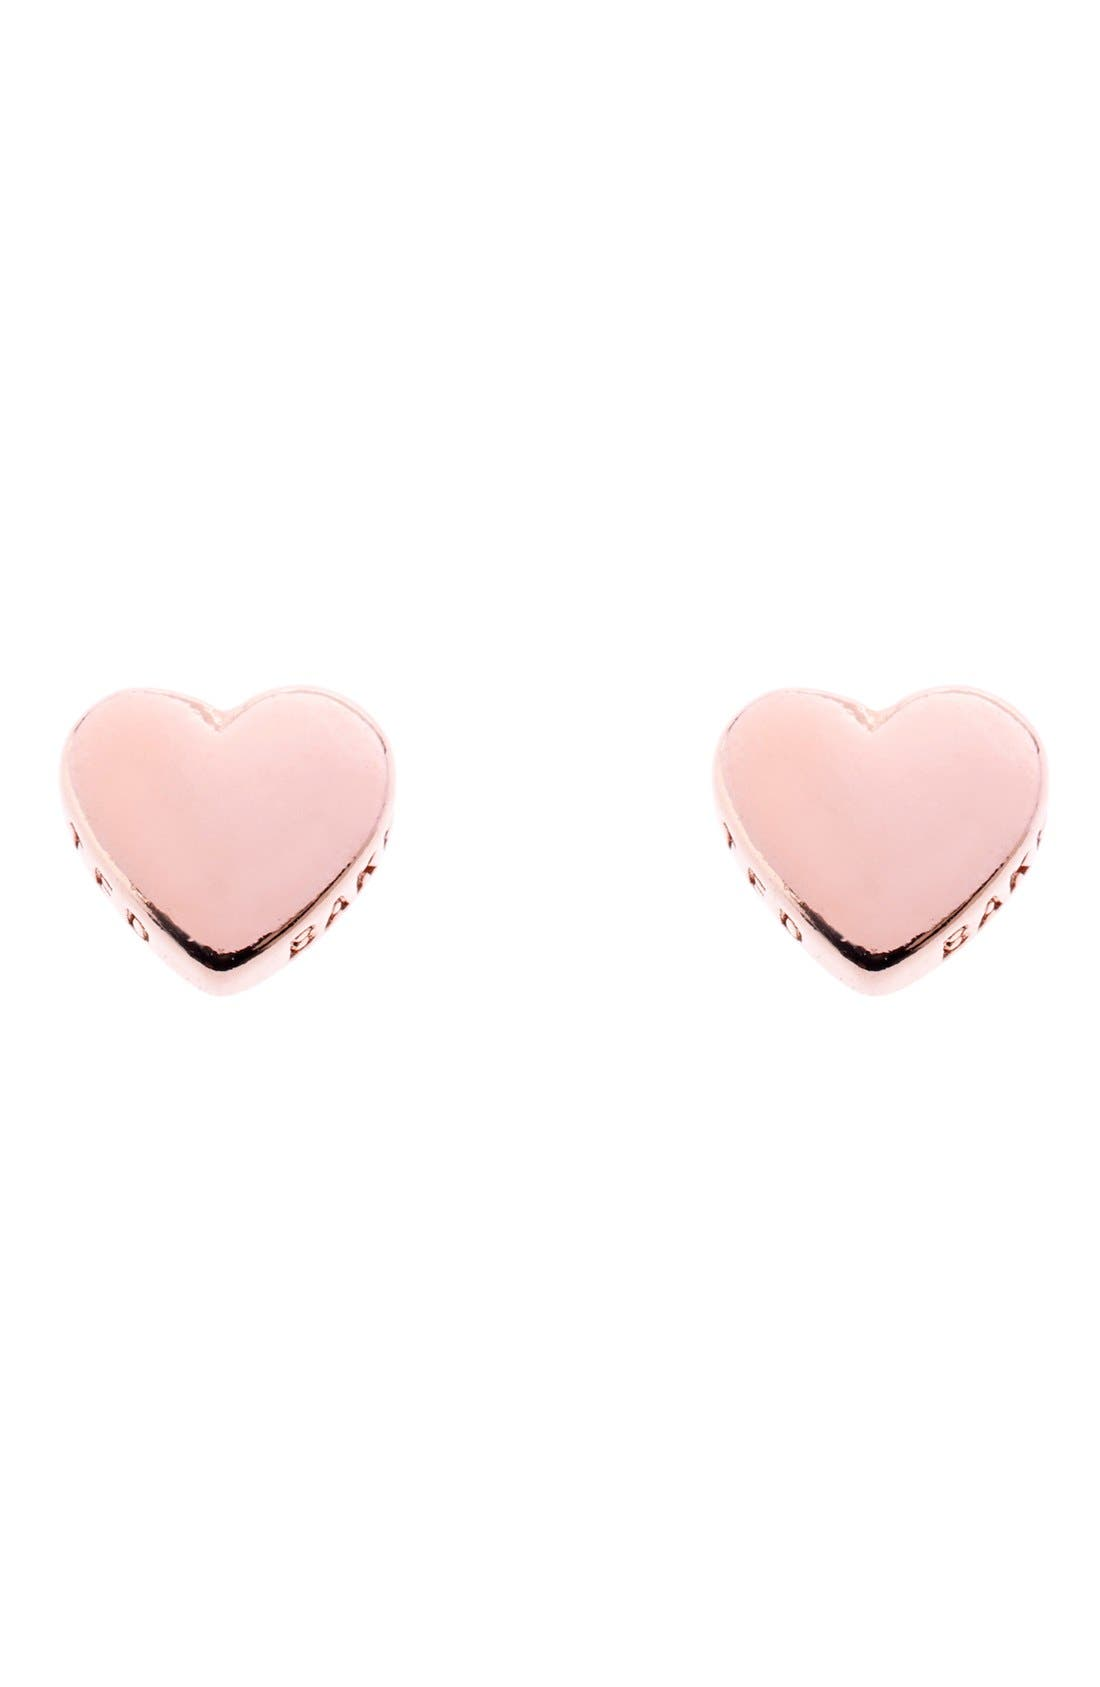 'Tiny Heart' Stud Earrings,                         Main,                         color, Rose Gold